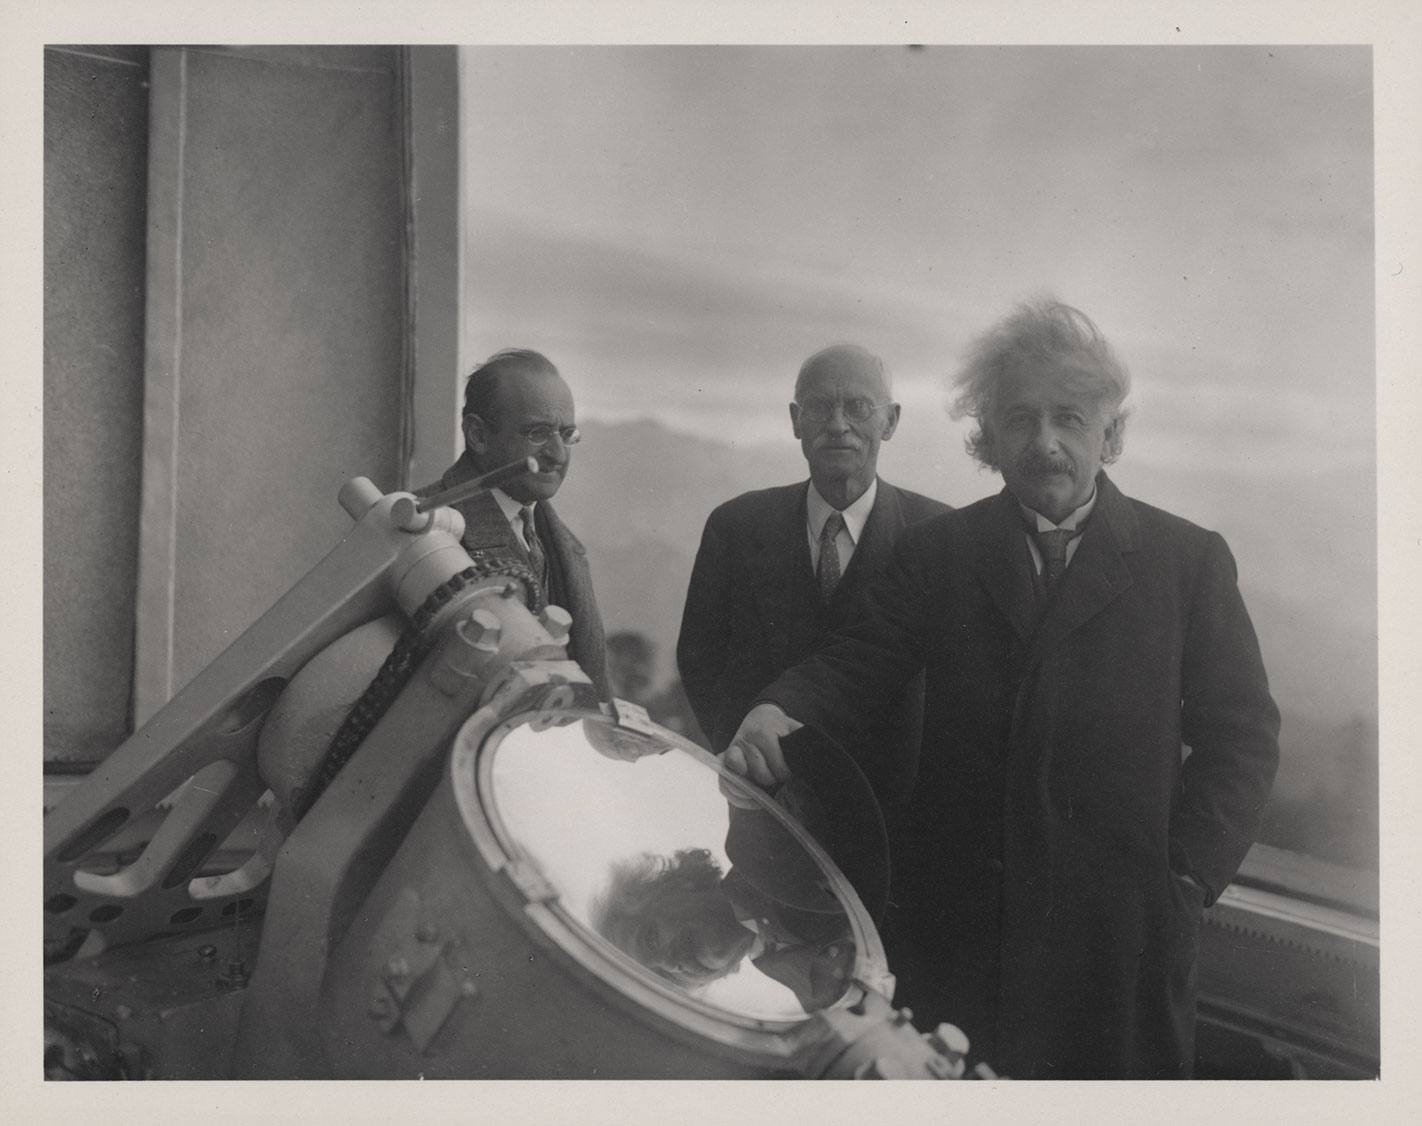 Albert Einstein at the Mount Wilson Observatory